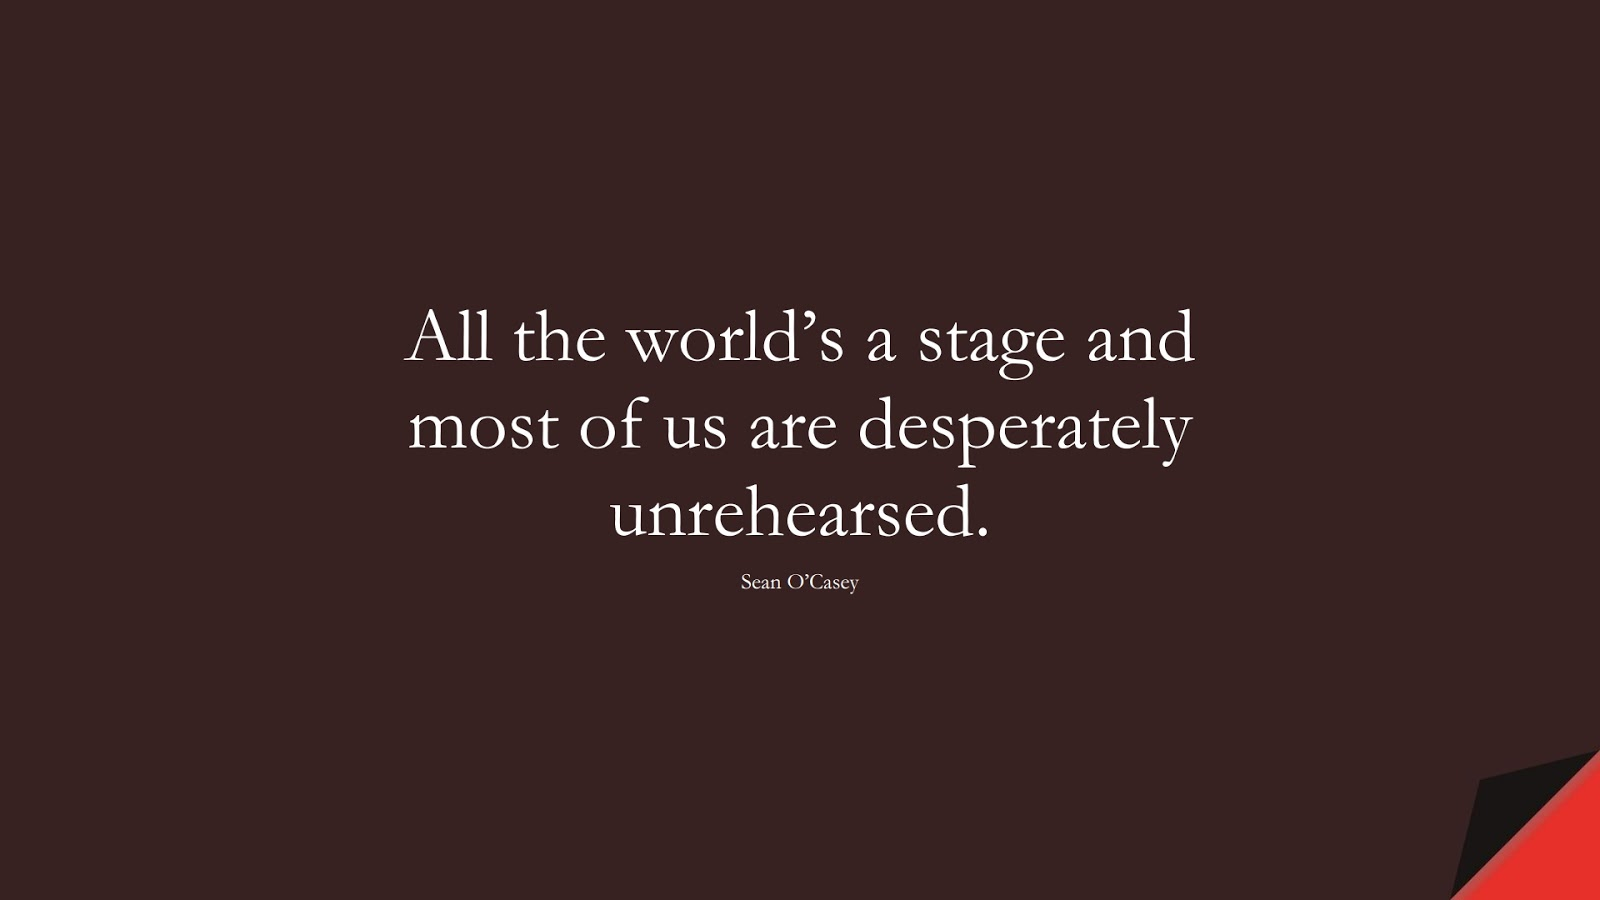 All the world's a stage and most of us are desperately unrehearsed. (Sean O'Casey);  #HumanityQuotes